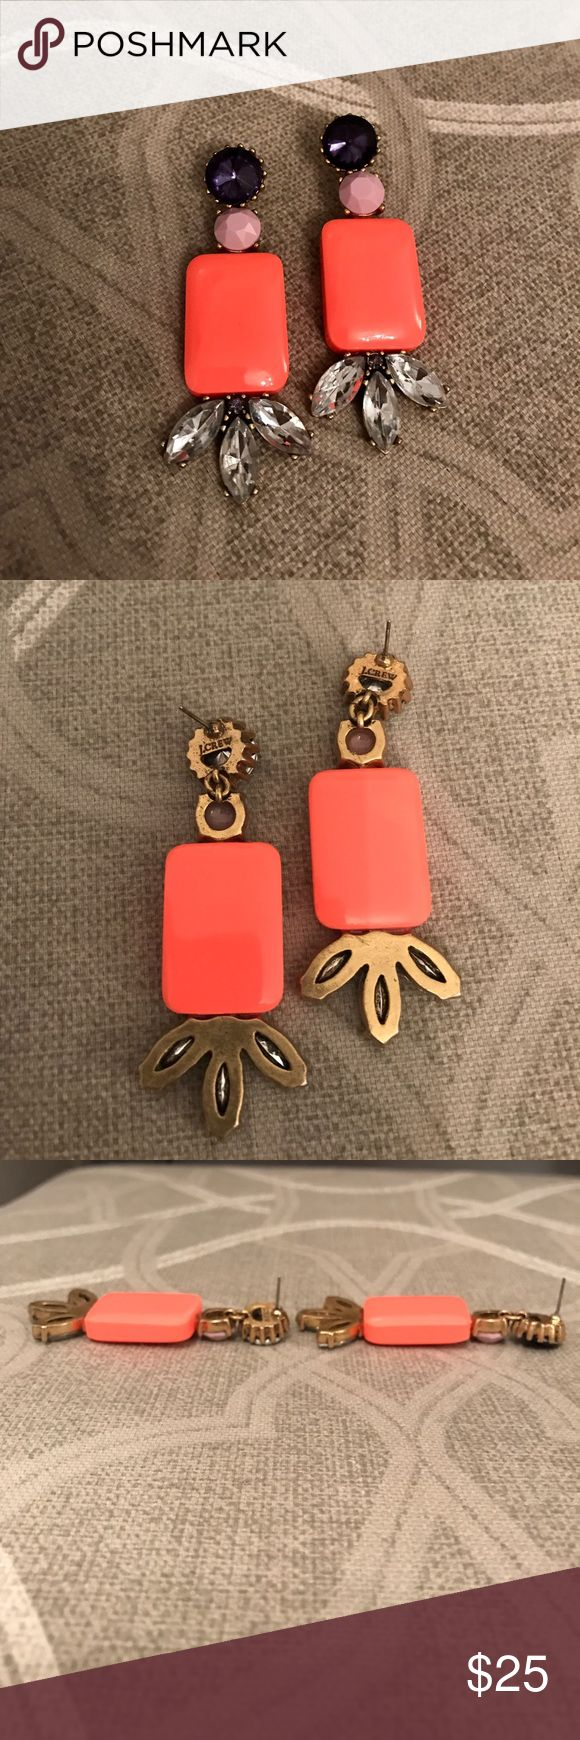 "J. CREW STATEMENT EARRINGS Gorgeous J. Crew statement earrings | Make any outfit pop with these | Bright coral/pink acrylic rectangles with lavender, purple, gray and clear gems | All gems in tact | Purple gem is crooked on one earring, but not loose and not noticeable looking straight on at the earring (see last photo) | Gems are in a gold/bronze setting | Do not have original backs to earrings | Great used condition, some marks on sides/ backs of earrings | Approx. 3"" long top to bottom J…"